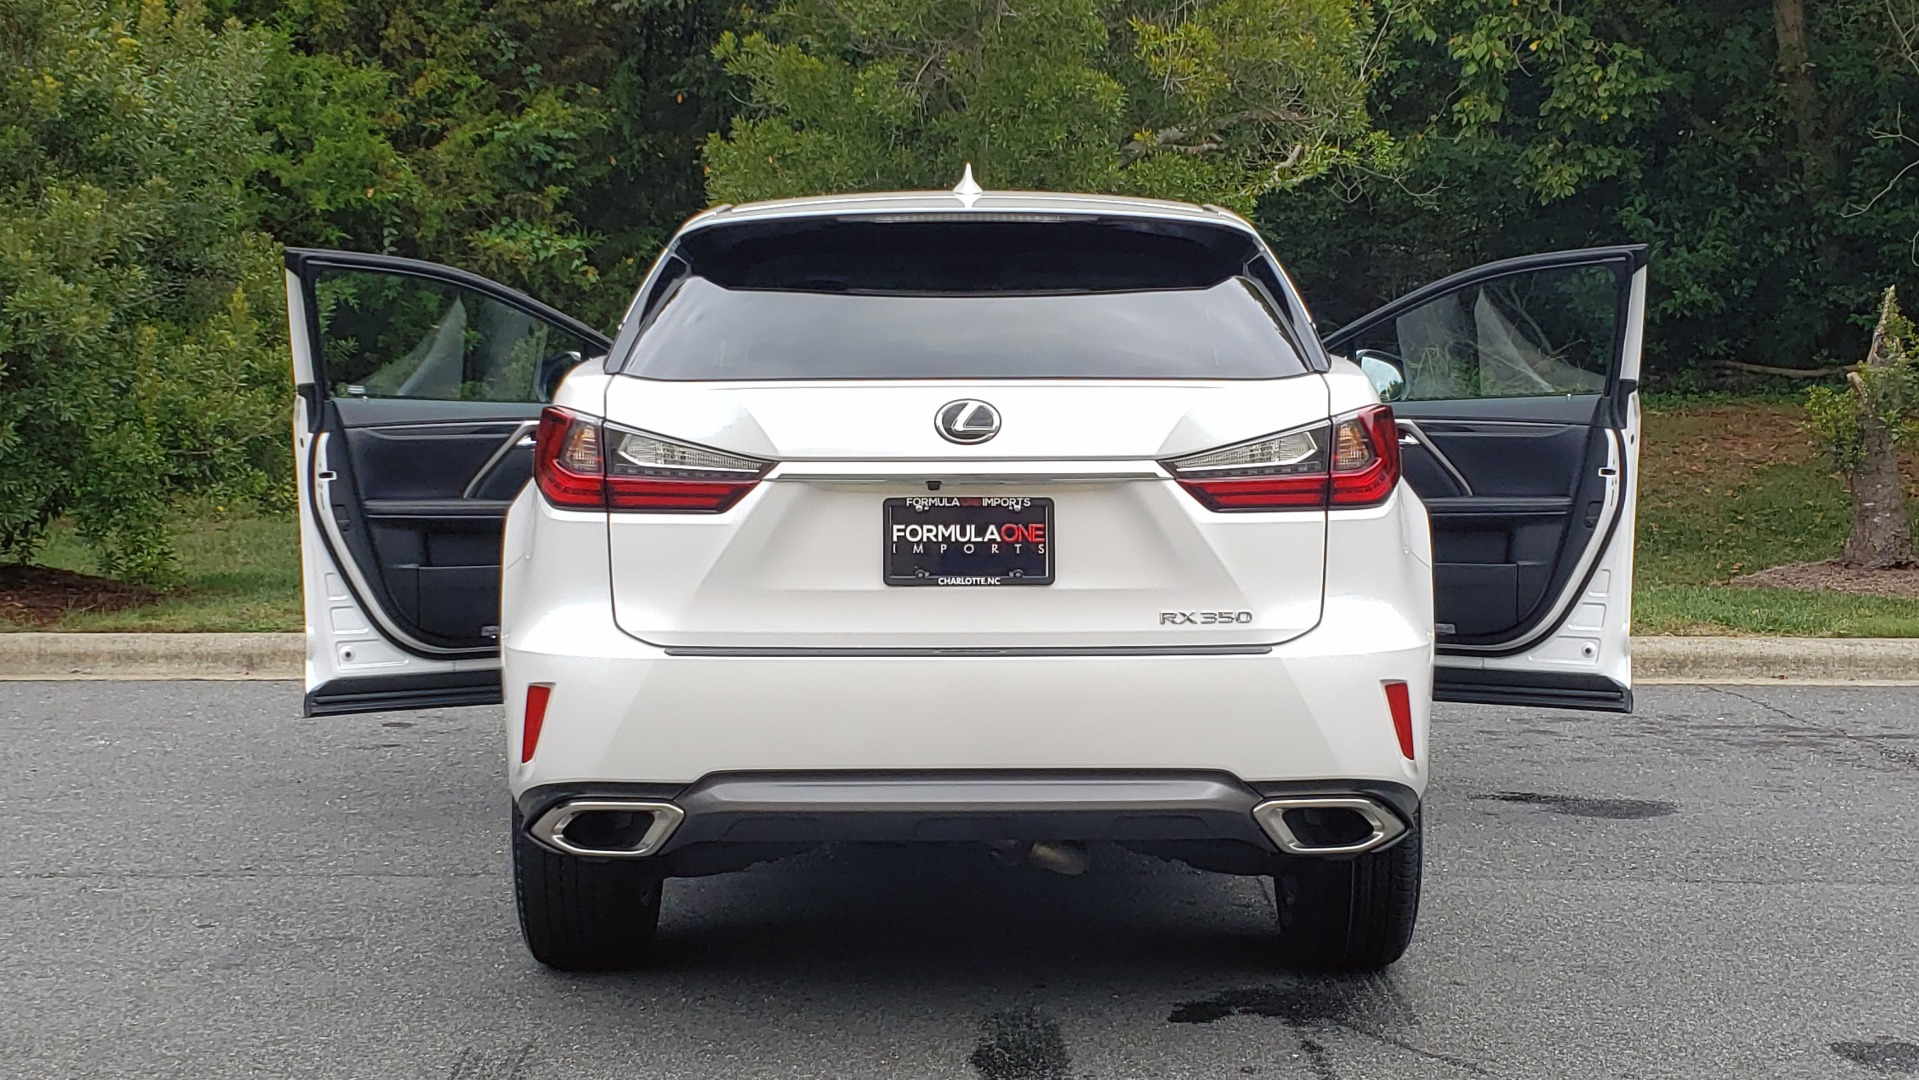 Used 2016 Lexus RX 350 FWD / 4-DR / 3.5L V6 / 8-SPD AUTO / LEATHER / REARVIEW for sale $29,795 at Formula Imports in Charlotte NC 28227 30